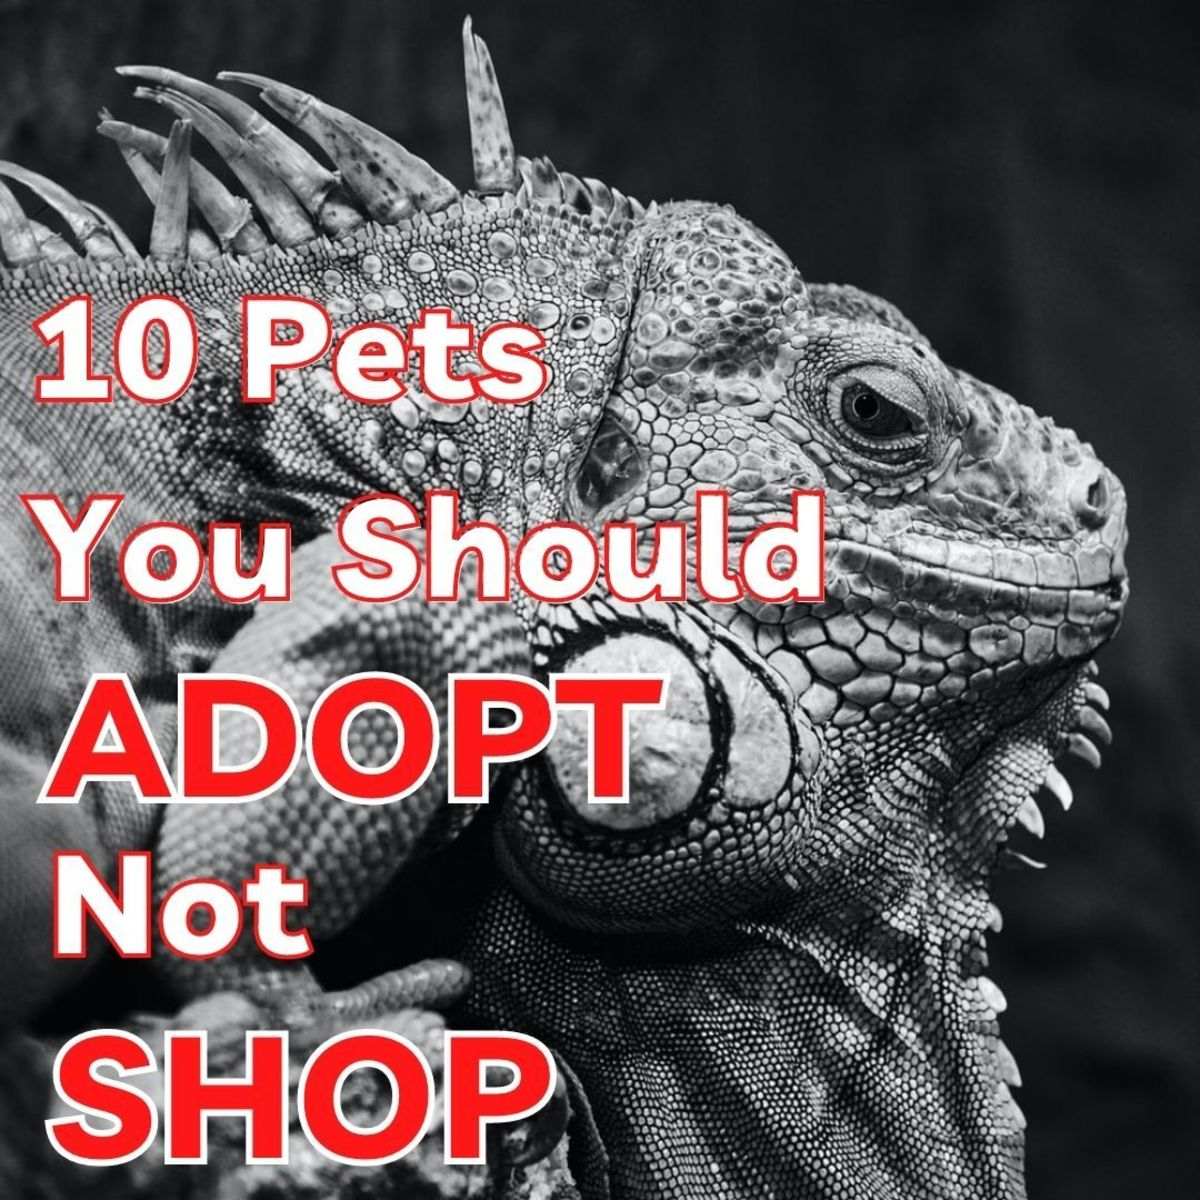 Many common species of pets, both domesticated and exotic, are over-bred because of the demand created by impulse buyers. That's why it's better to adopt instead of buy them.